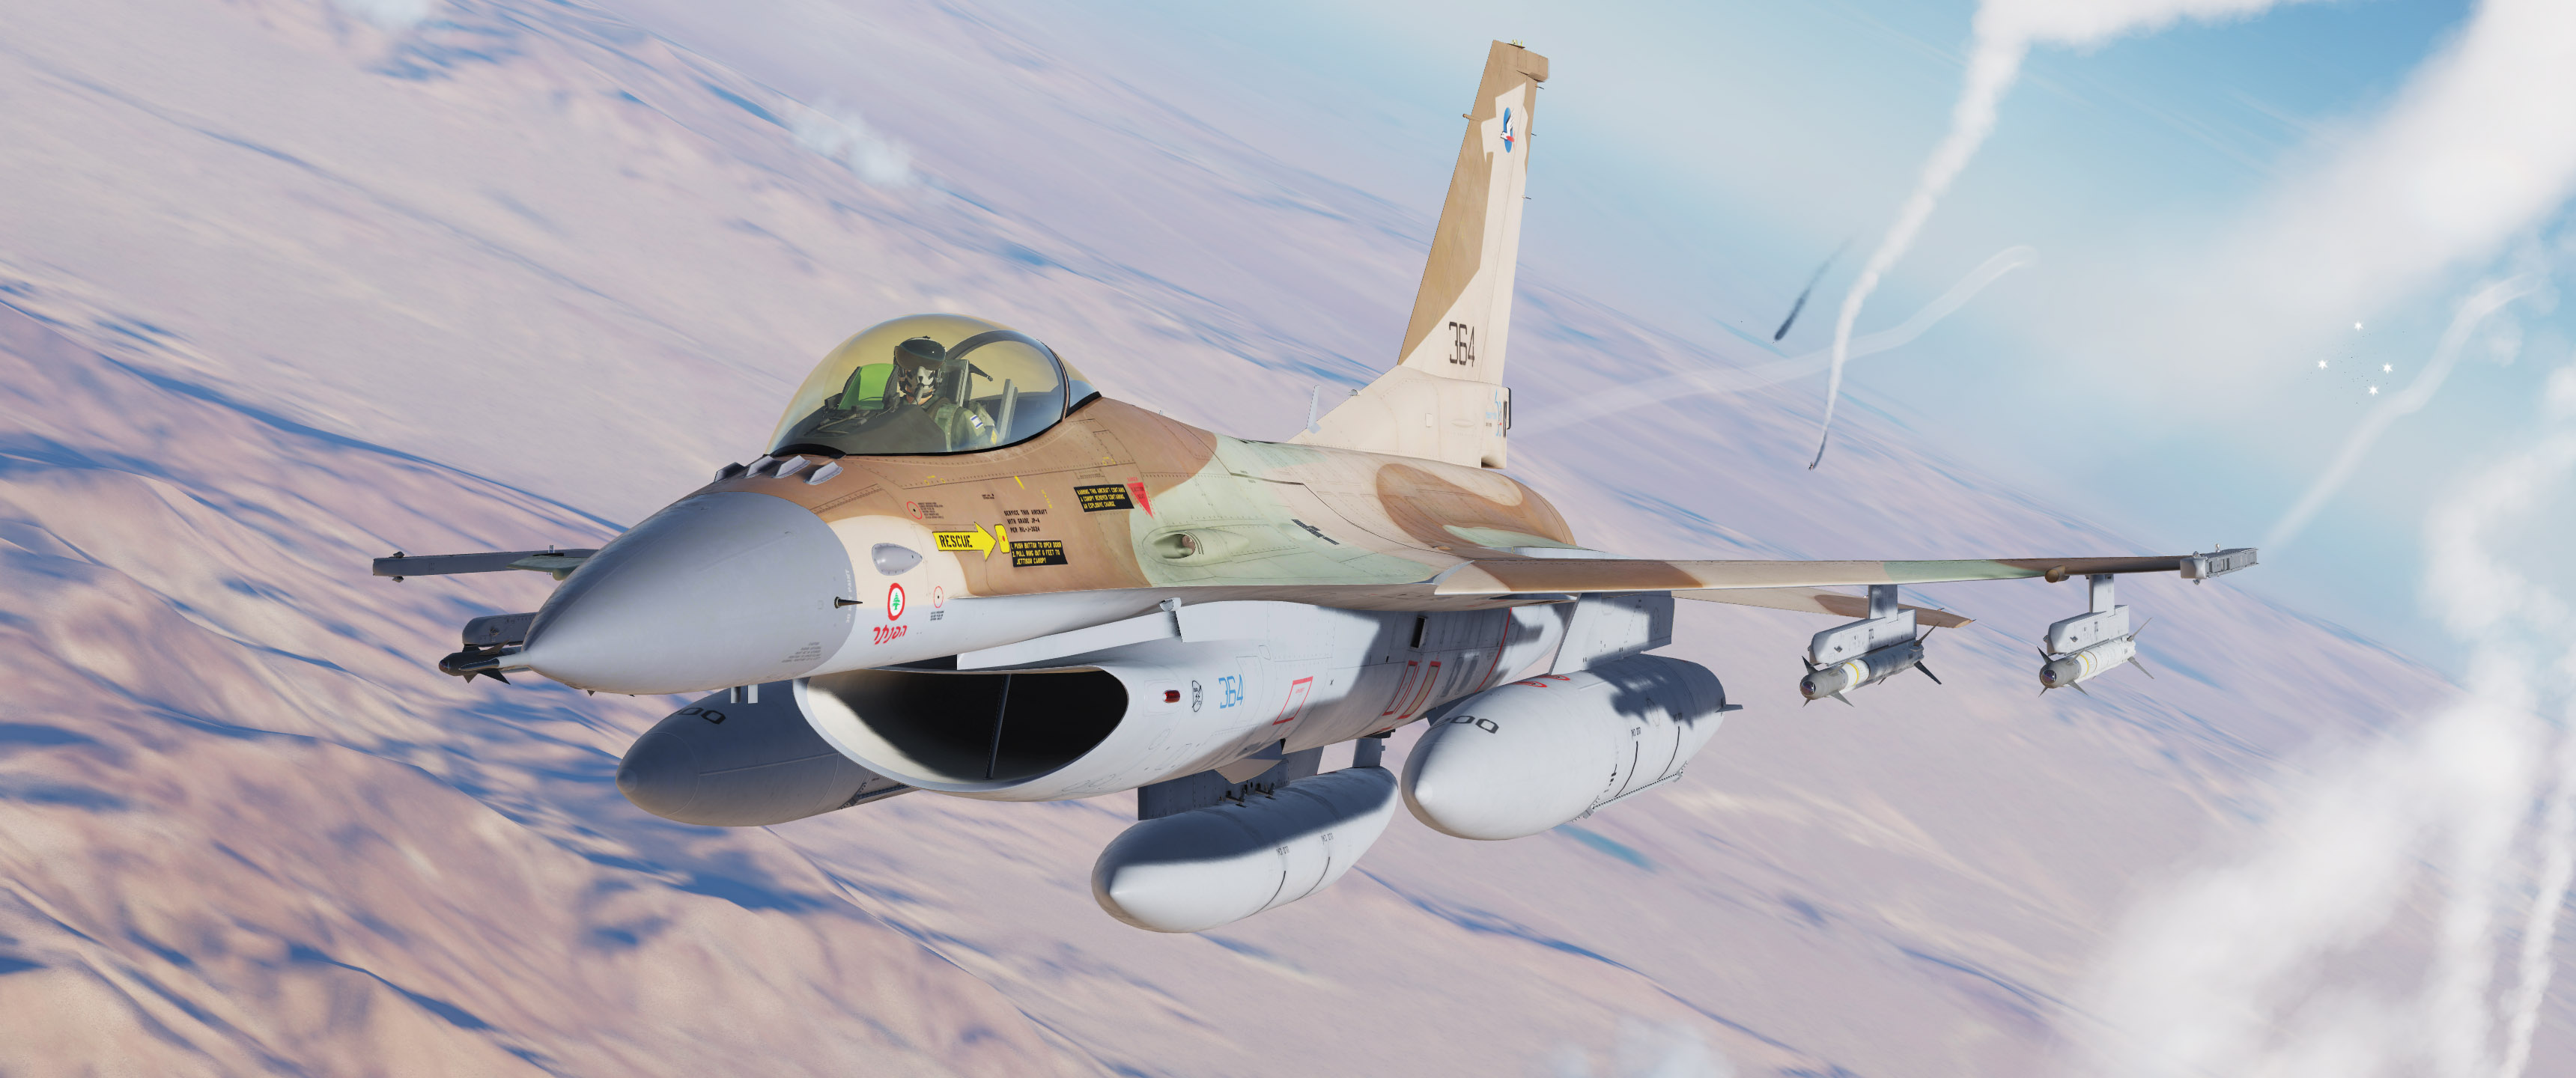 [Updated] IAF F16C - 110 Squadron - Knights Of The North